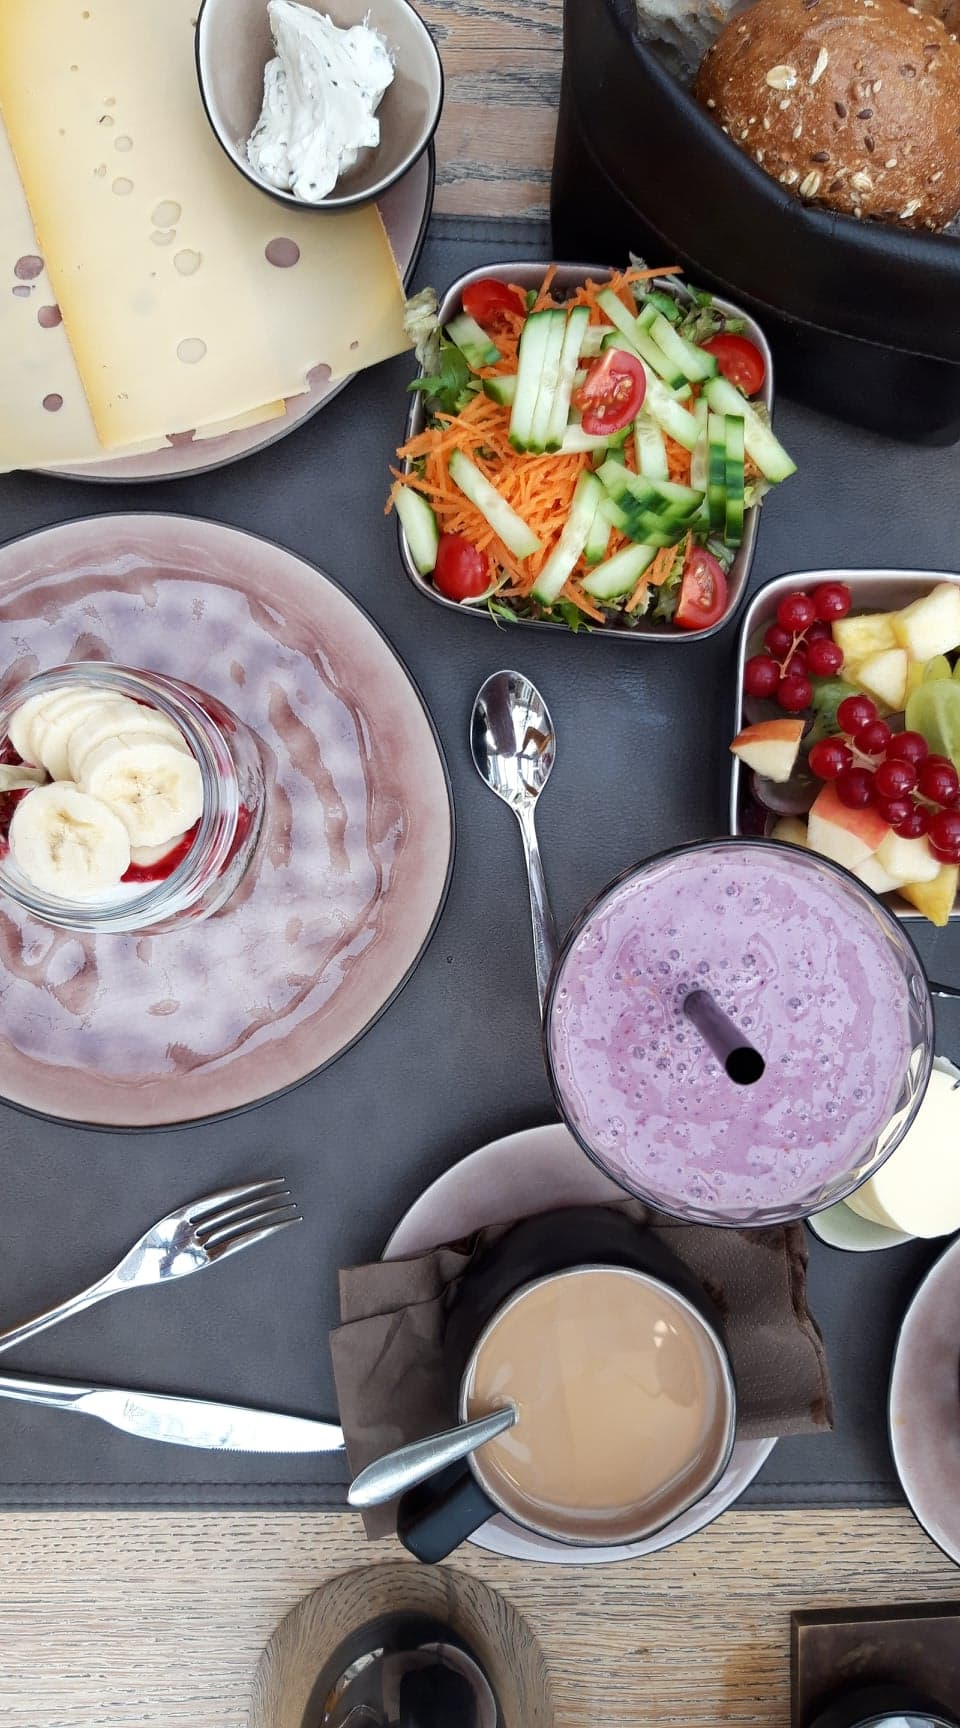 brunch: salad, fruit salad, yoghurt with fruit, coffee and smoothie